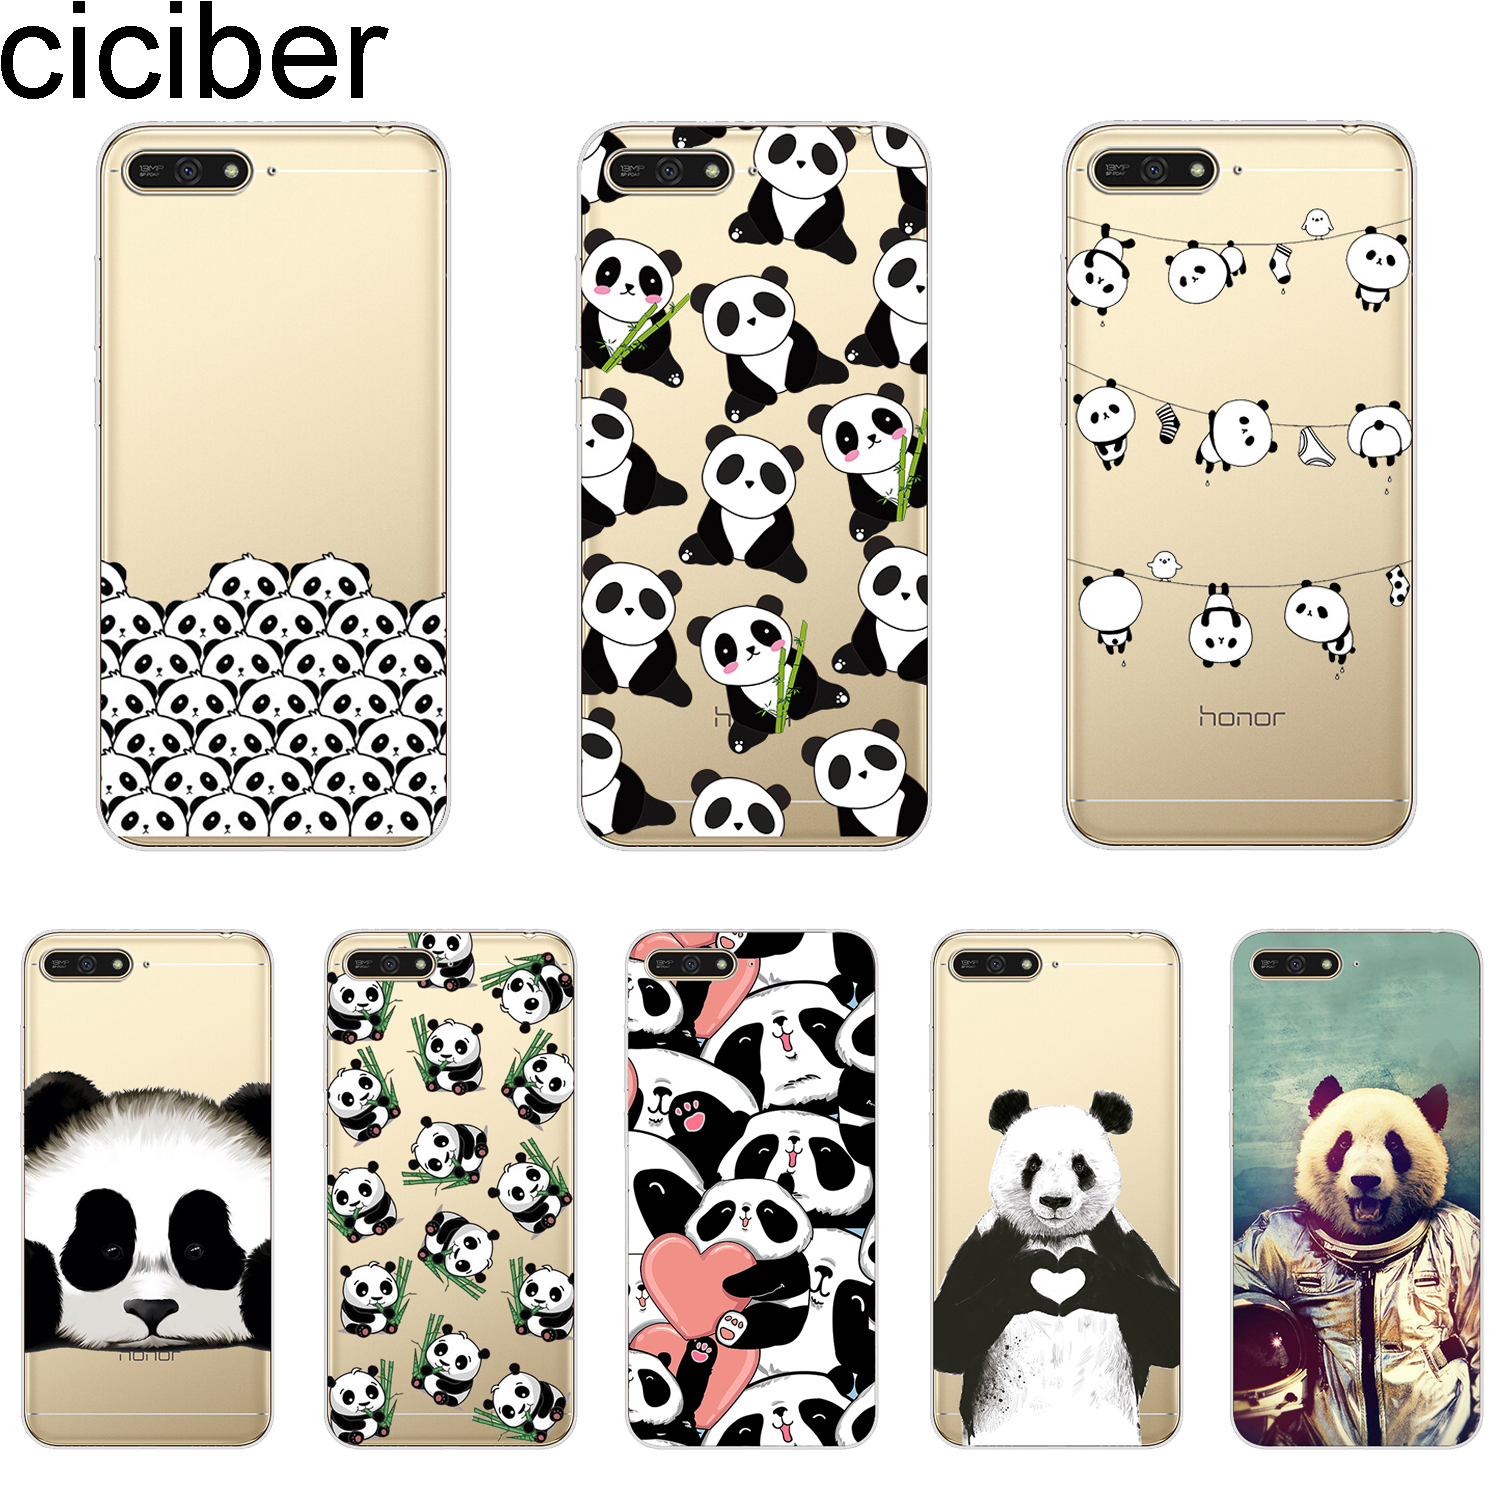 Fitted Cases Cellphones & Telecommunications Ciciber Cover For Huawei Y9 Y7 Y6 Y5 Y3 Prime Pro 2018 2017 2019 Phone Cases Soft Tpu Cute Animal Pandas Shell Coque Capa Activating Blood Circulation And Strengthening Sinews And Bones